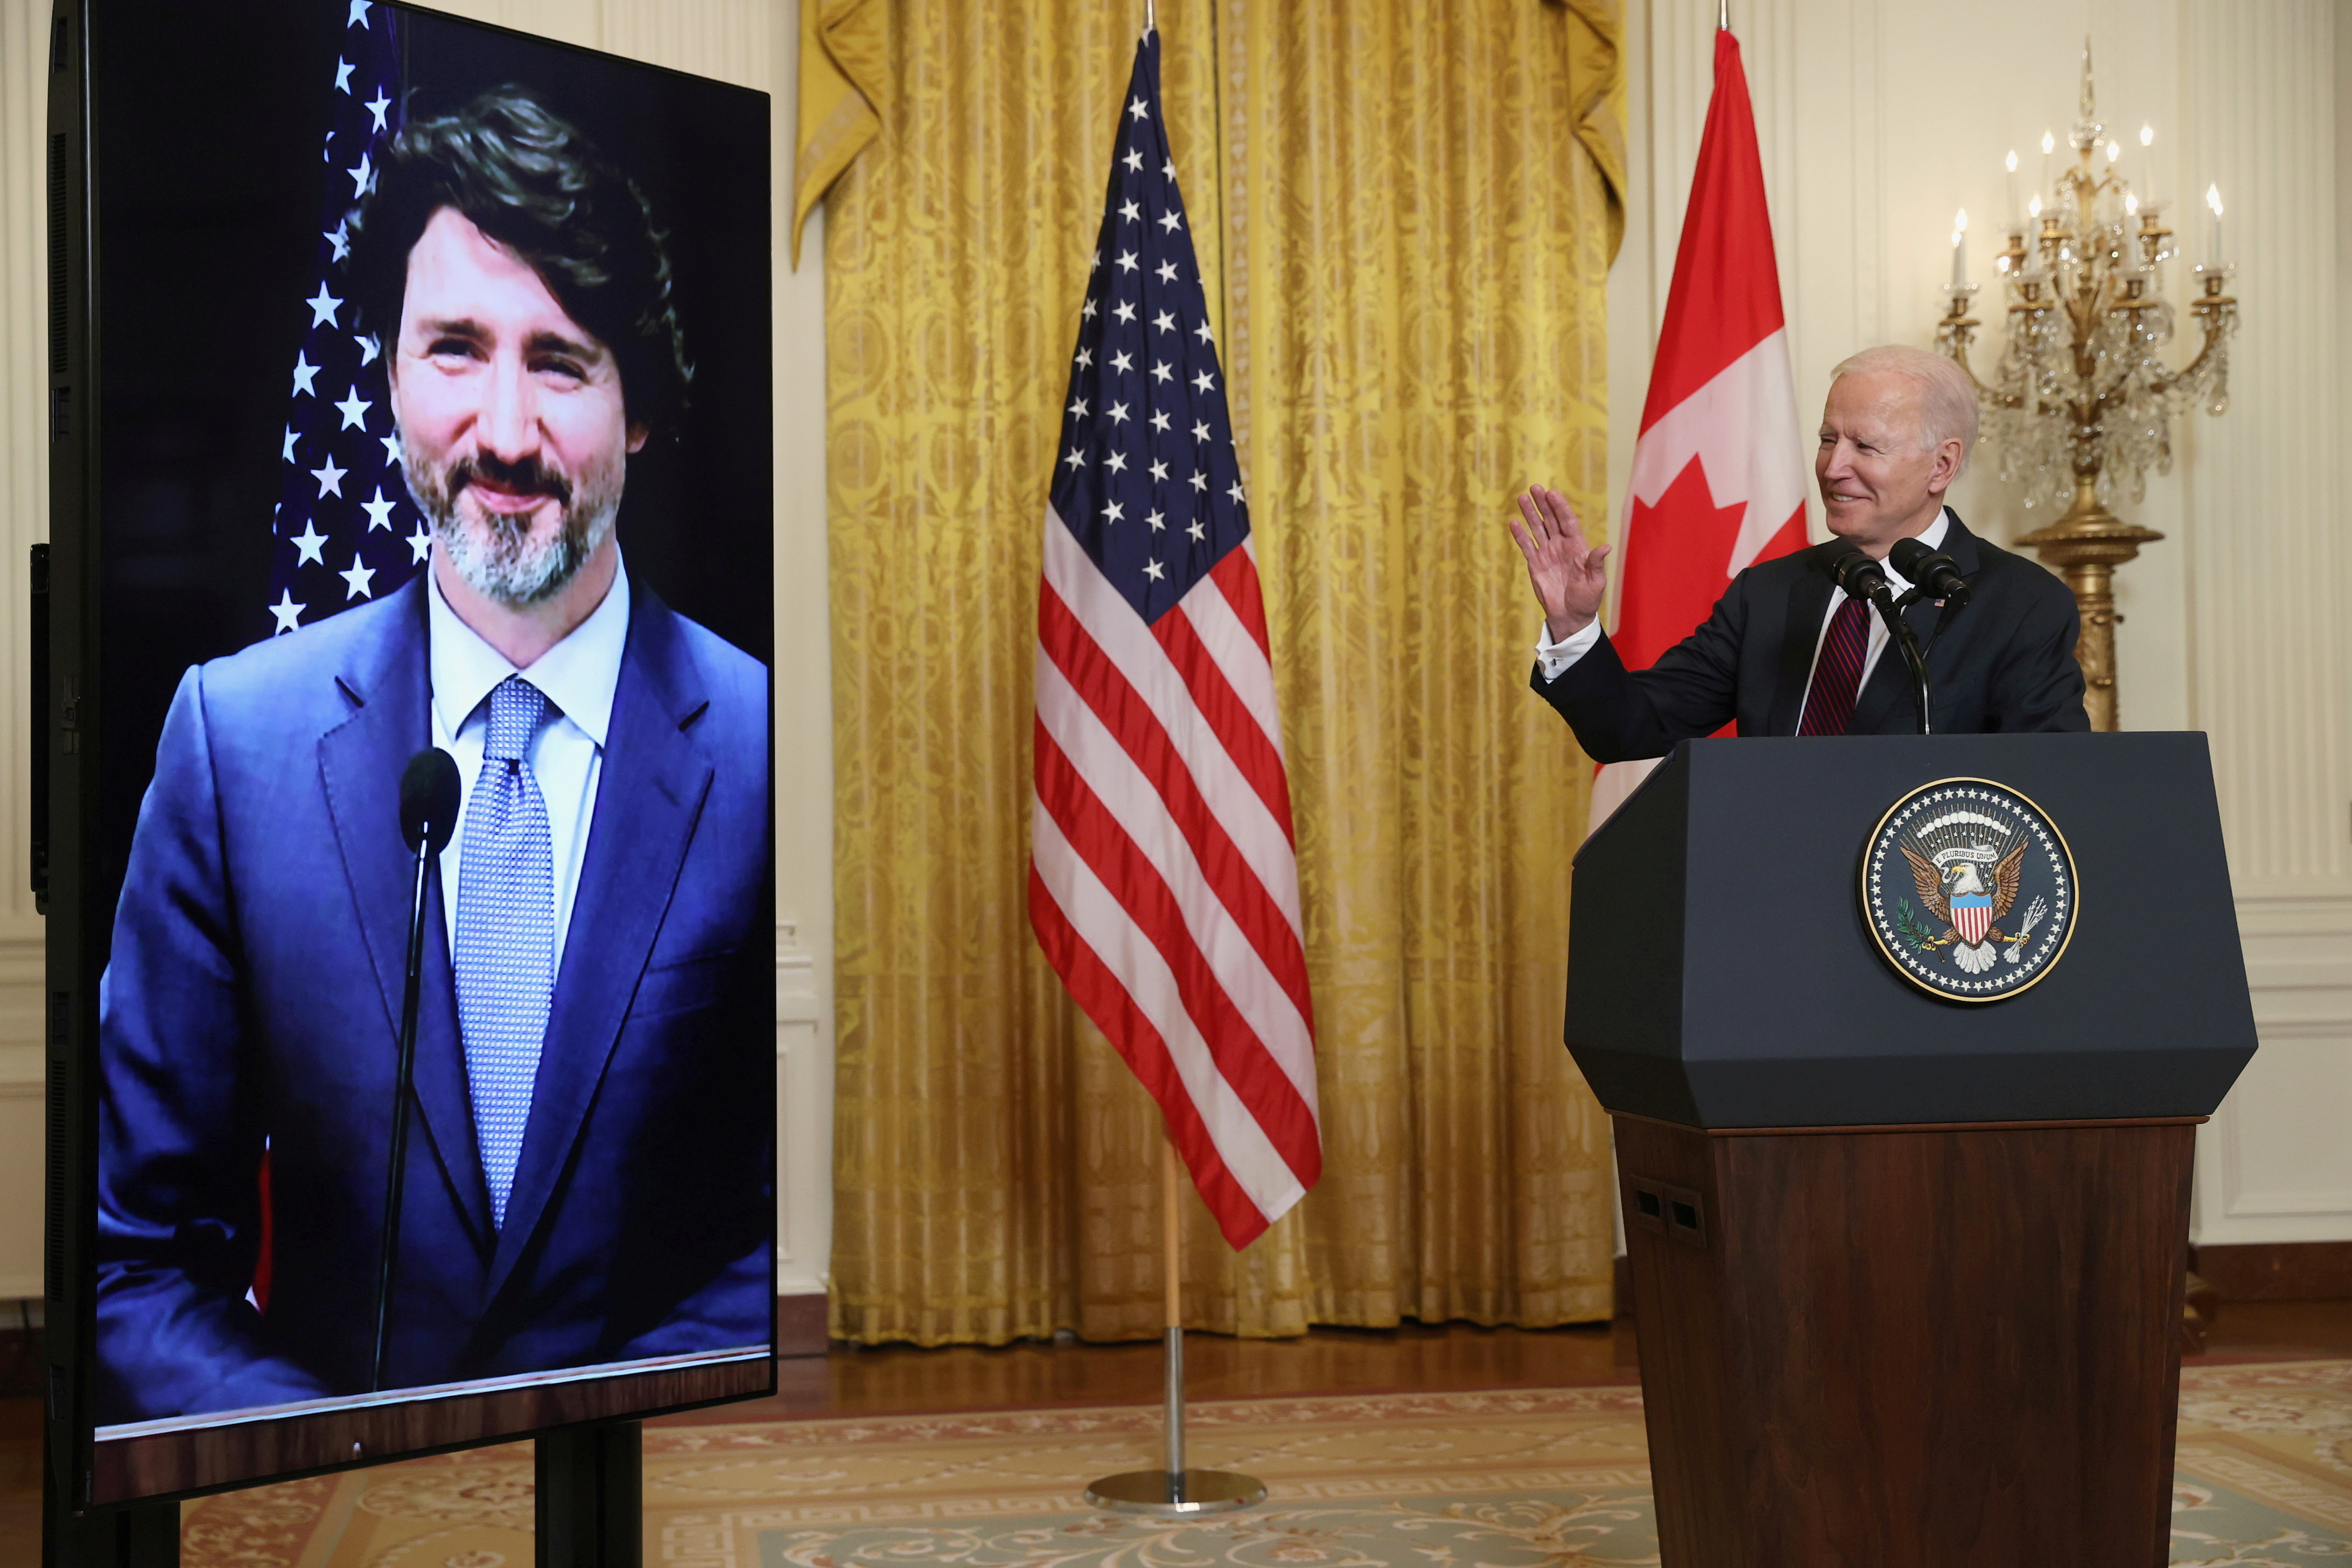 U.S. President Joe Biden gestures to Canada's Prime Minister Justin Trudeau, appearing via video conference call, during closing remarks at the end of their virtual bilateral meeting from the White House in Washington, U.S. February 23, 2021. REUTERS/Jonathan Ernst/File Photo